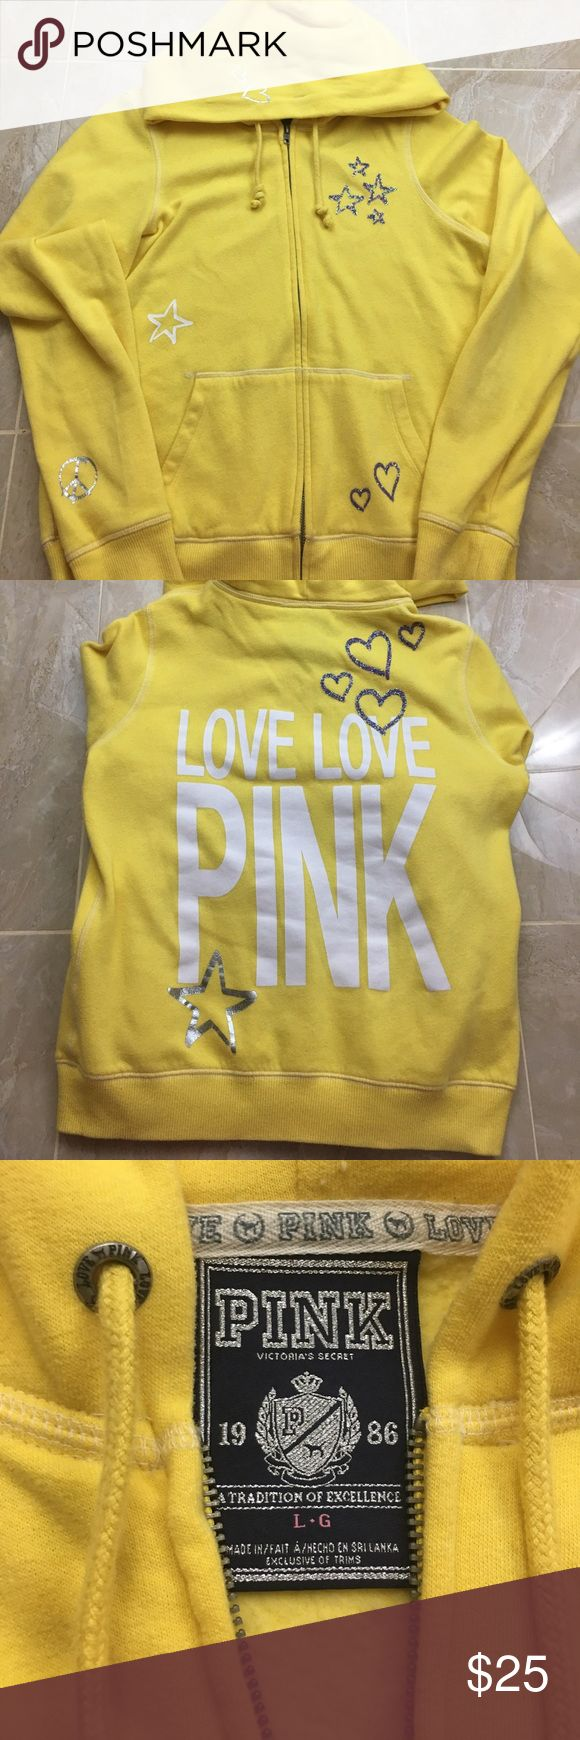 BARELY WORN PINK Victoria's Secret Hoodie A super soft fleece yellow zip-up hoodie from Victoria's Secret PINK. It has purple glittery details and small printed detailing as well. I have only worn it 3x so it is still in great condition with soft fleece in the inside. PINK Victoria's Secret Tops Sweatshirts & Hoodies